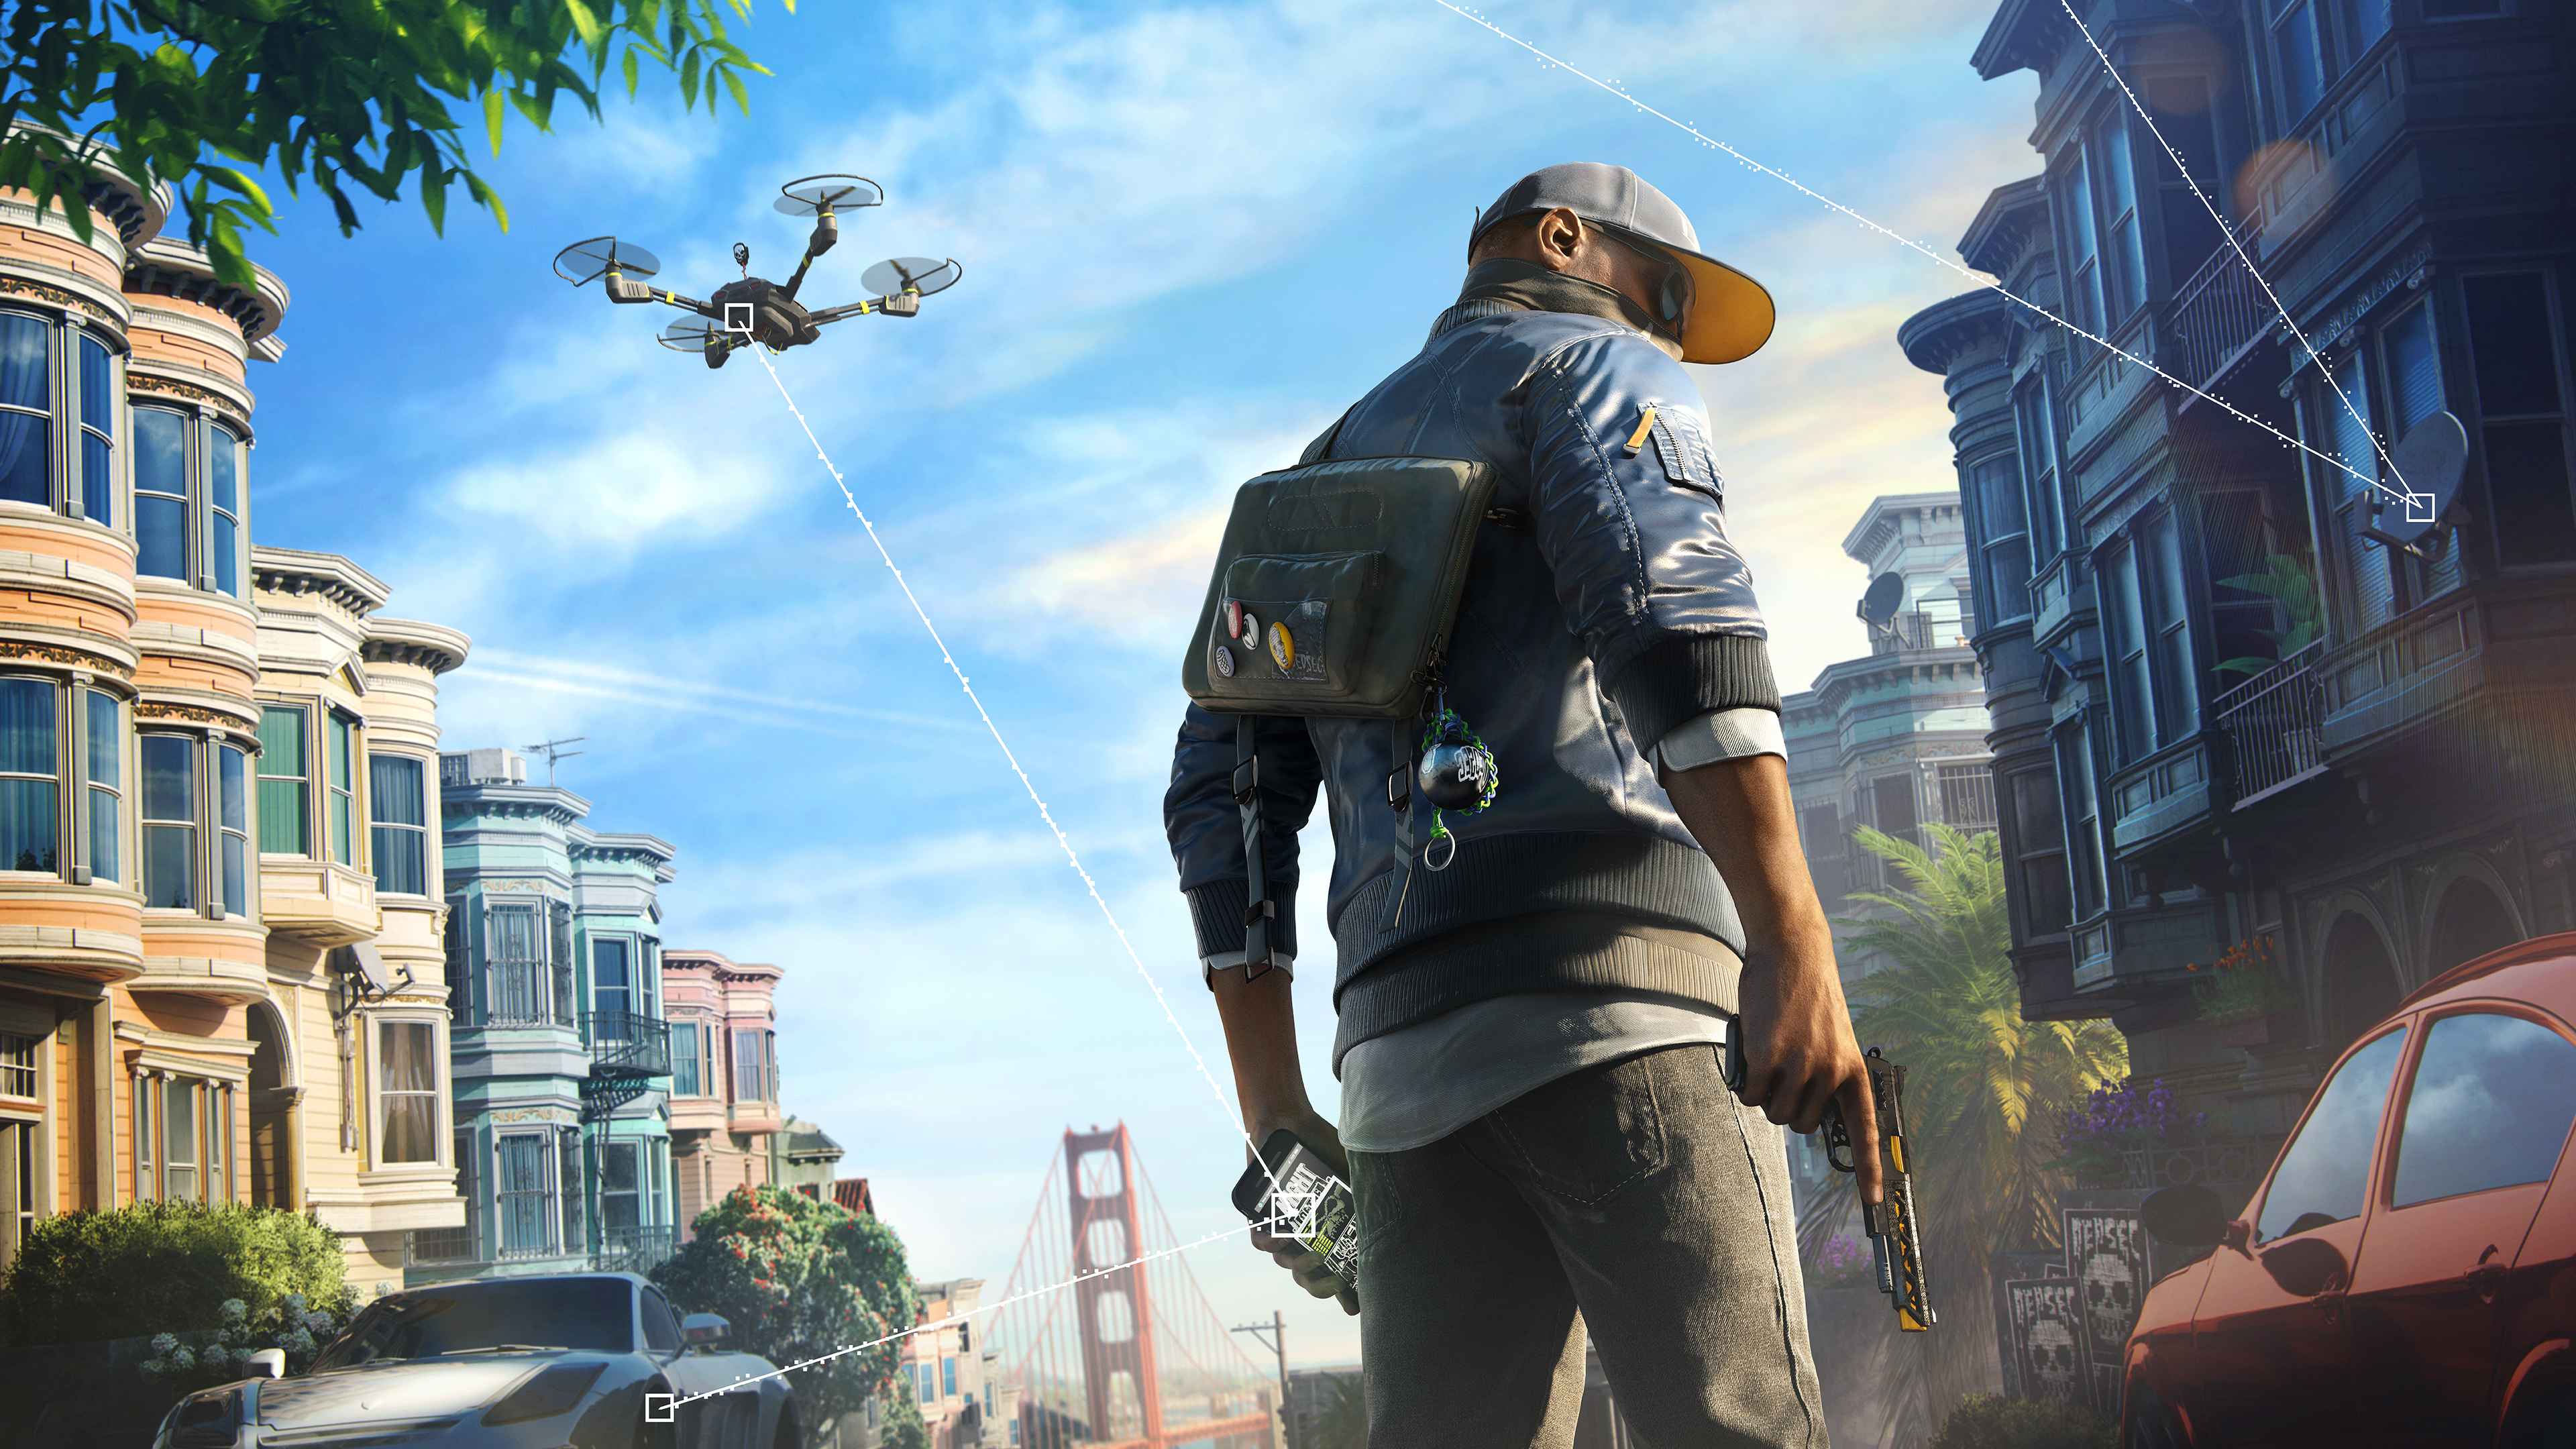 General 3840x2160 Watch_Dogs Watch_Dogs 2 video games pistol video game characters city drone hacking blue jacket smartphone